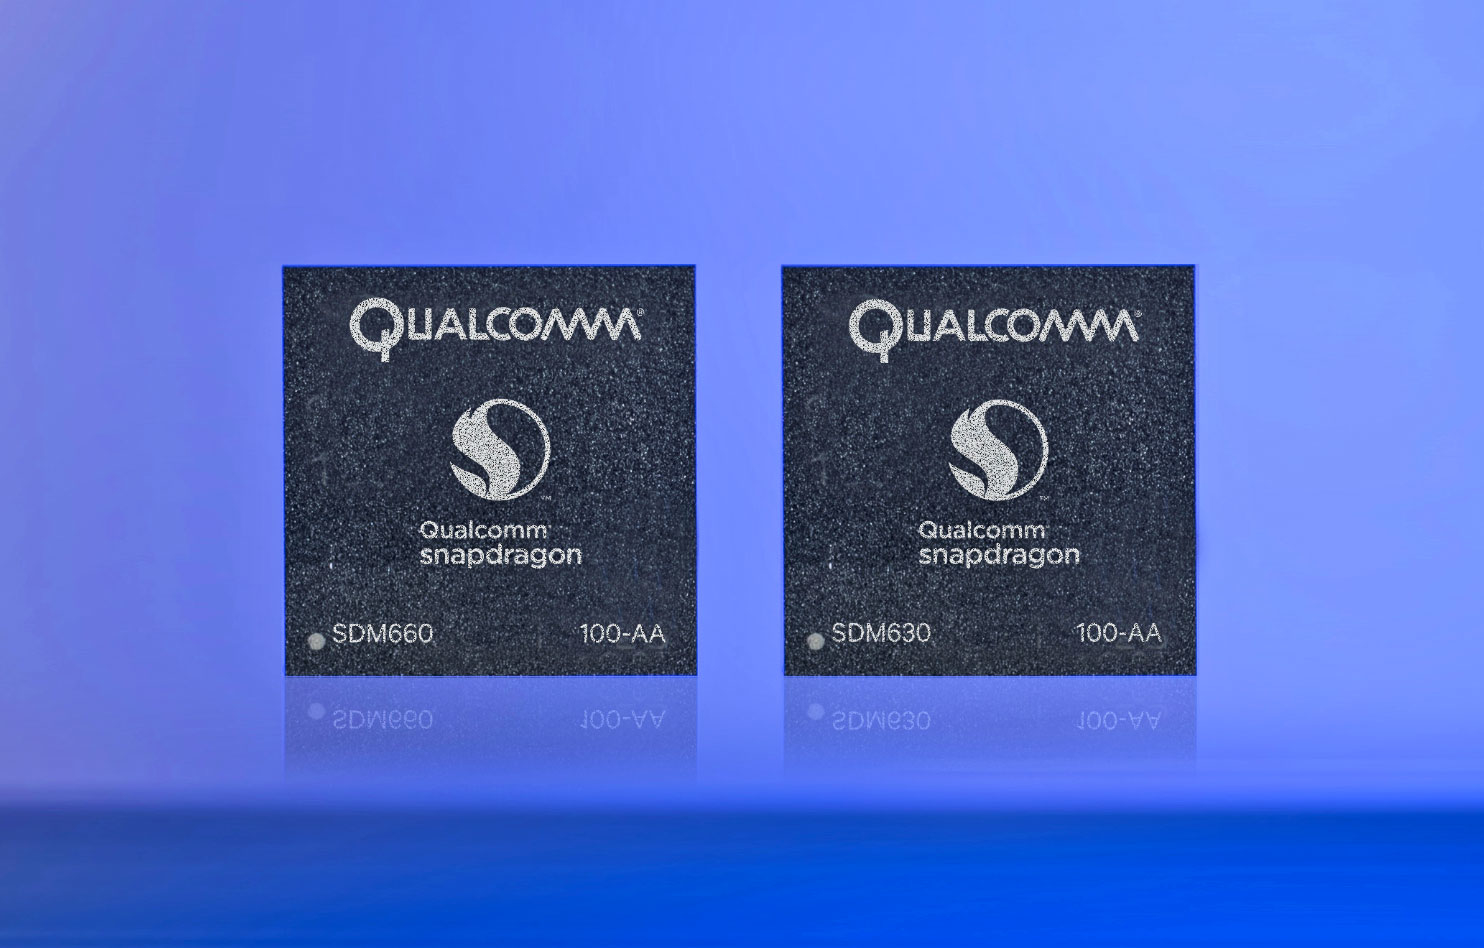 Qualcomm new mid-tier mobile chips are very good news for gaming